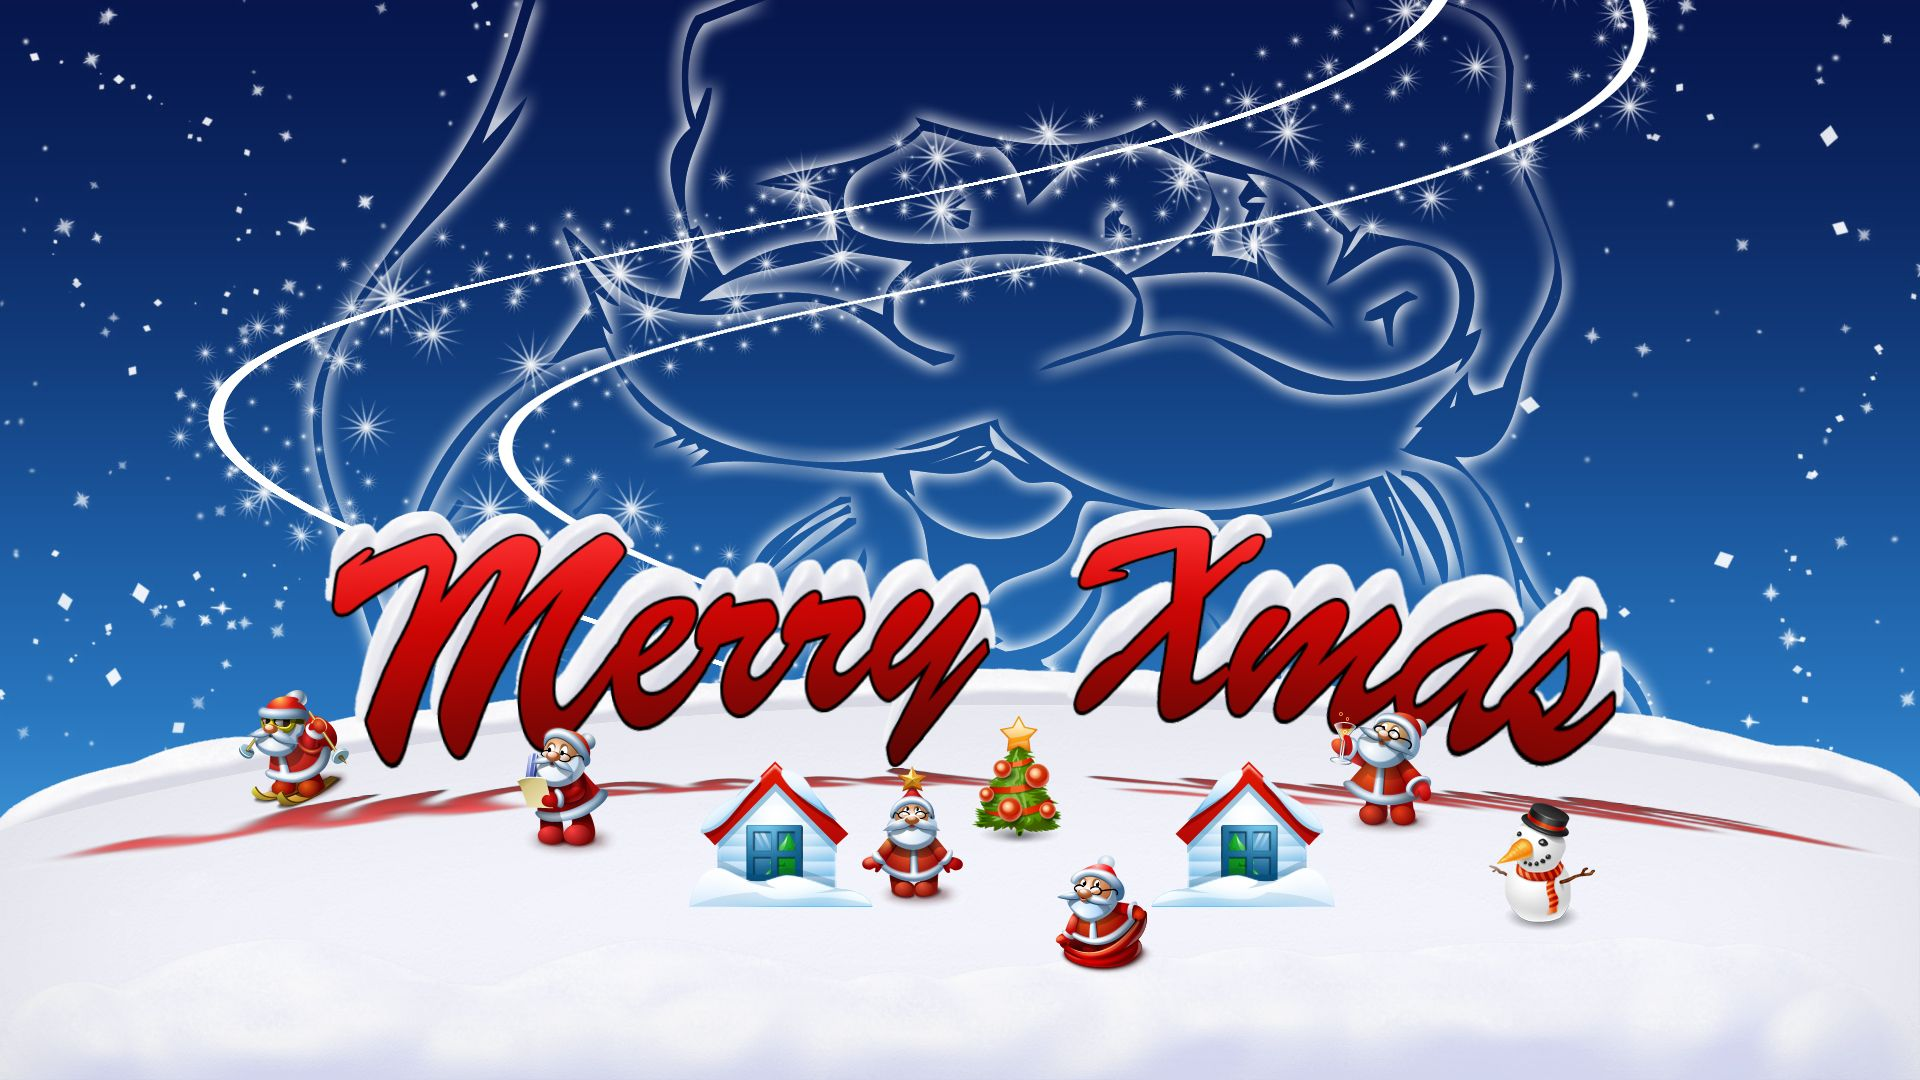 Download free merry xmas hd images httpwww download free merry xmas hd images http voltagebd Gallery